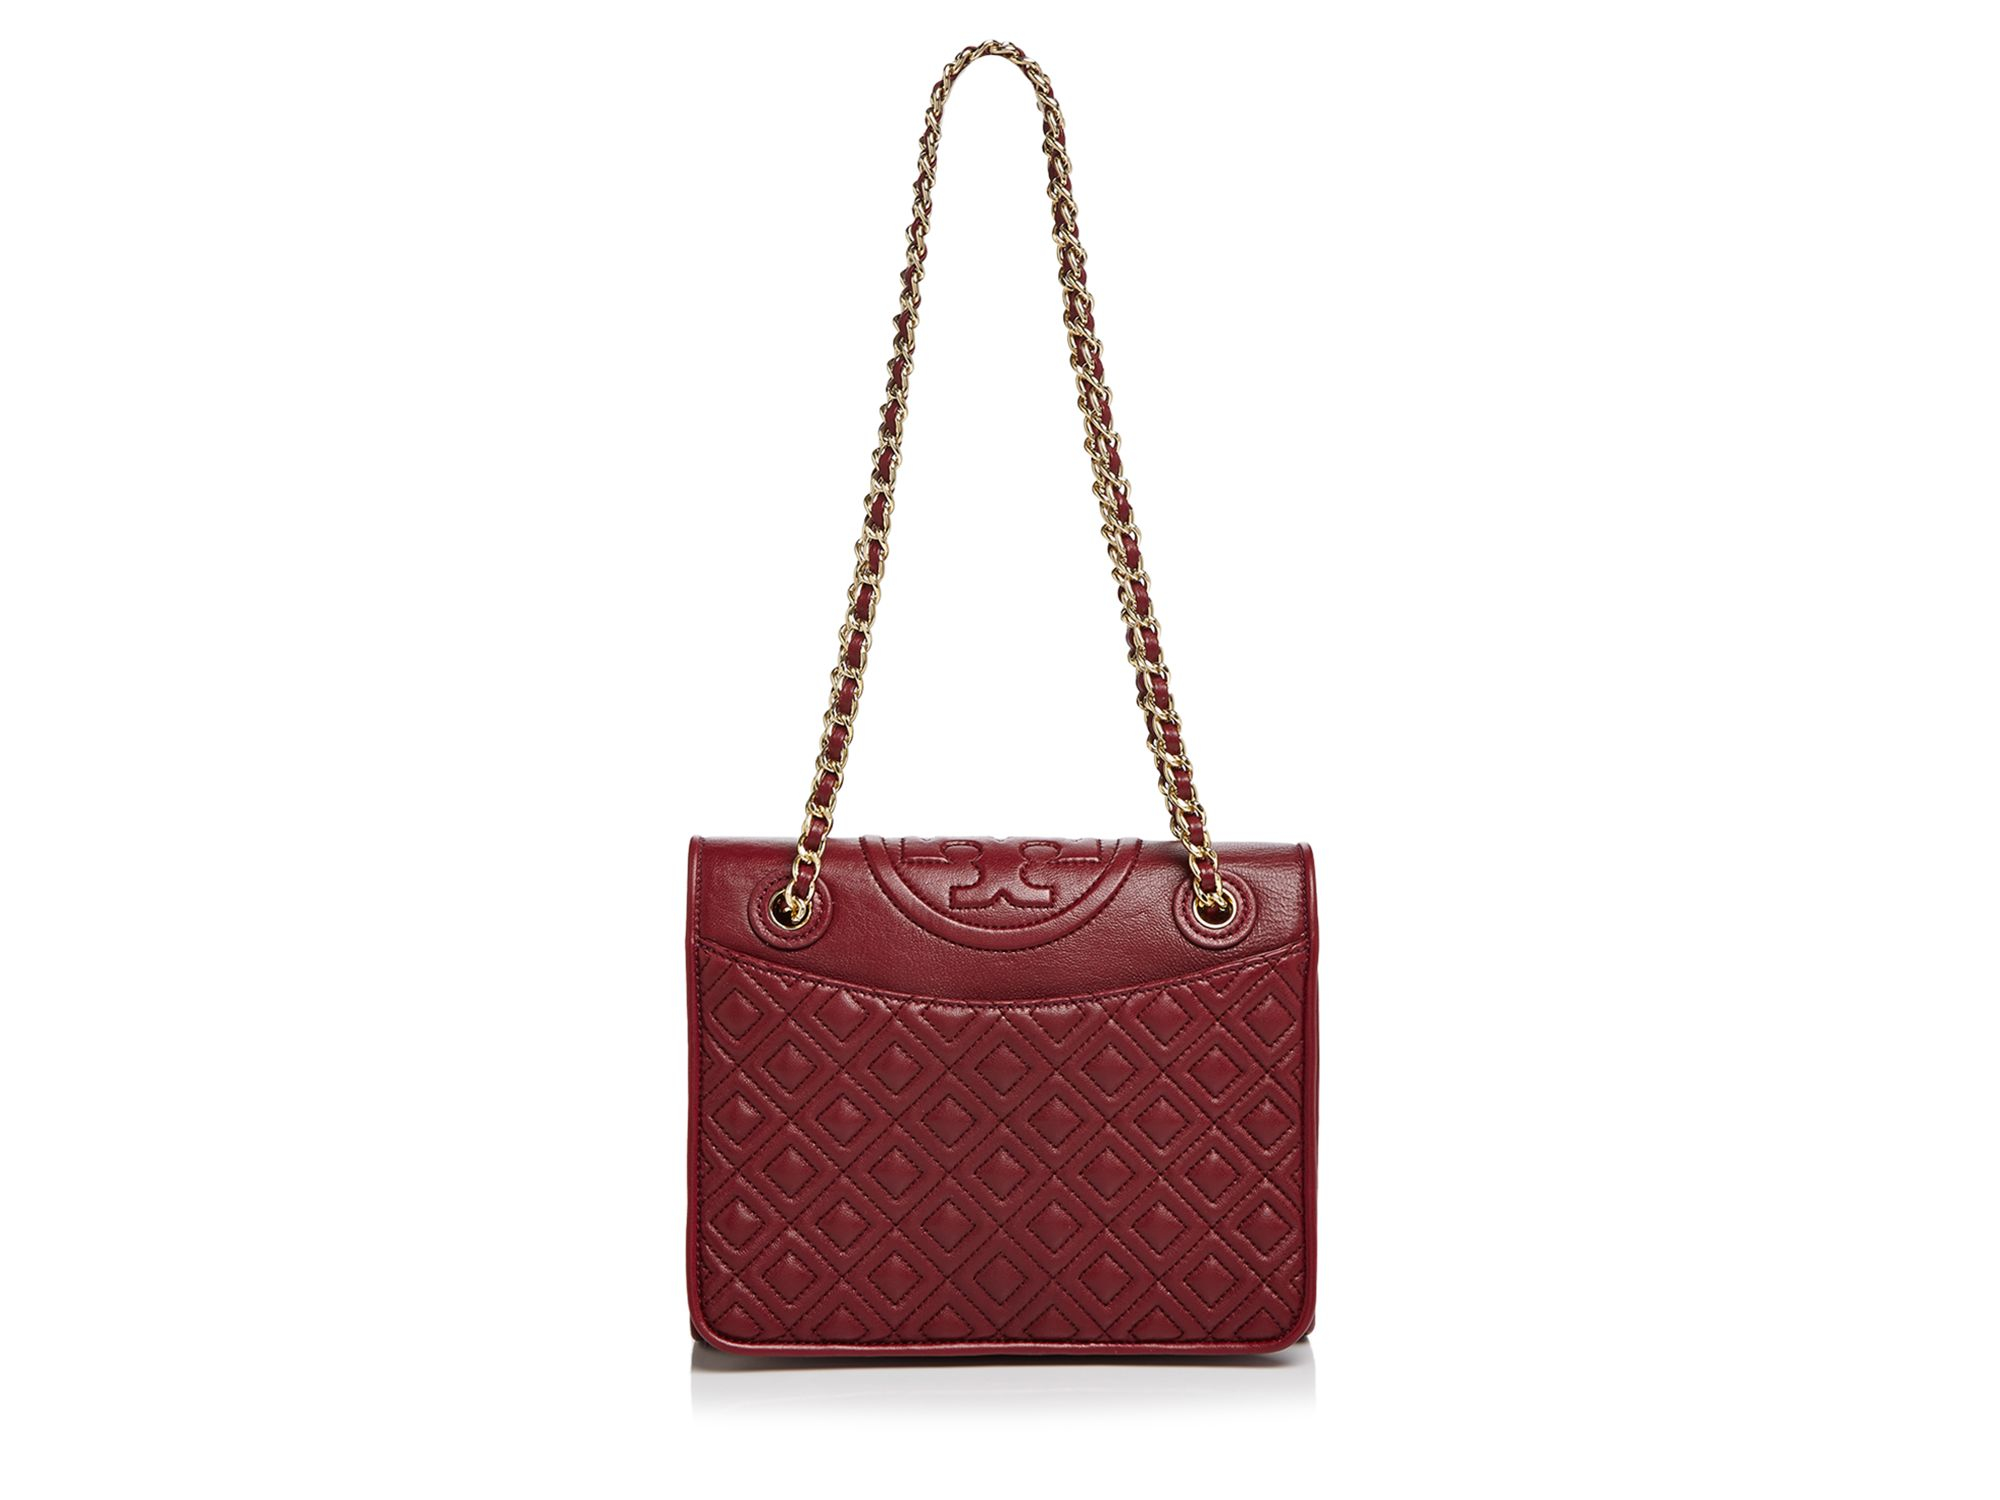 Tory burch Fleming Medium Shoulder Bag in Red | Lyst